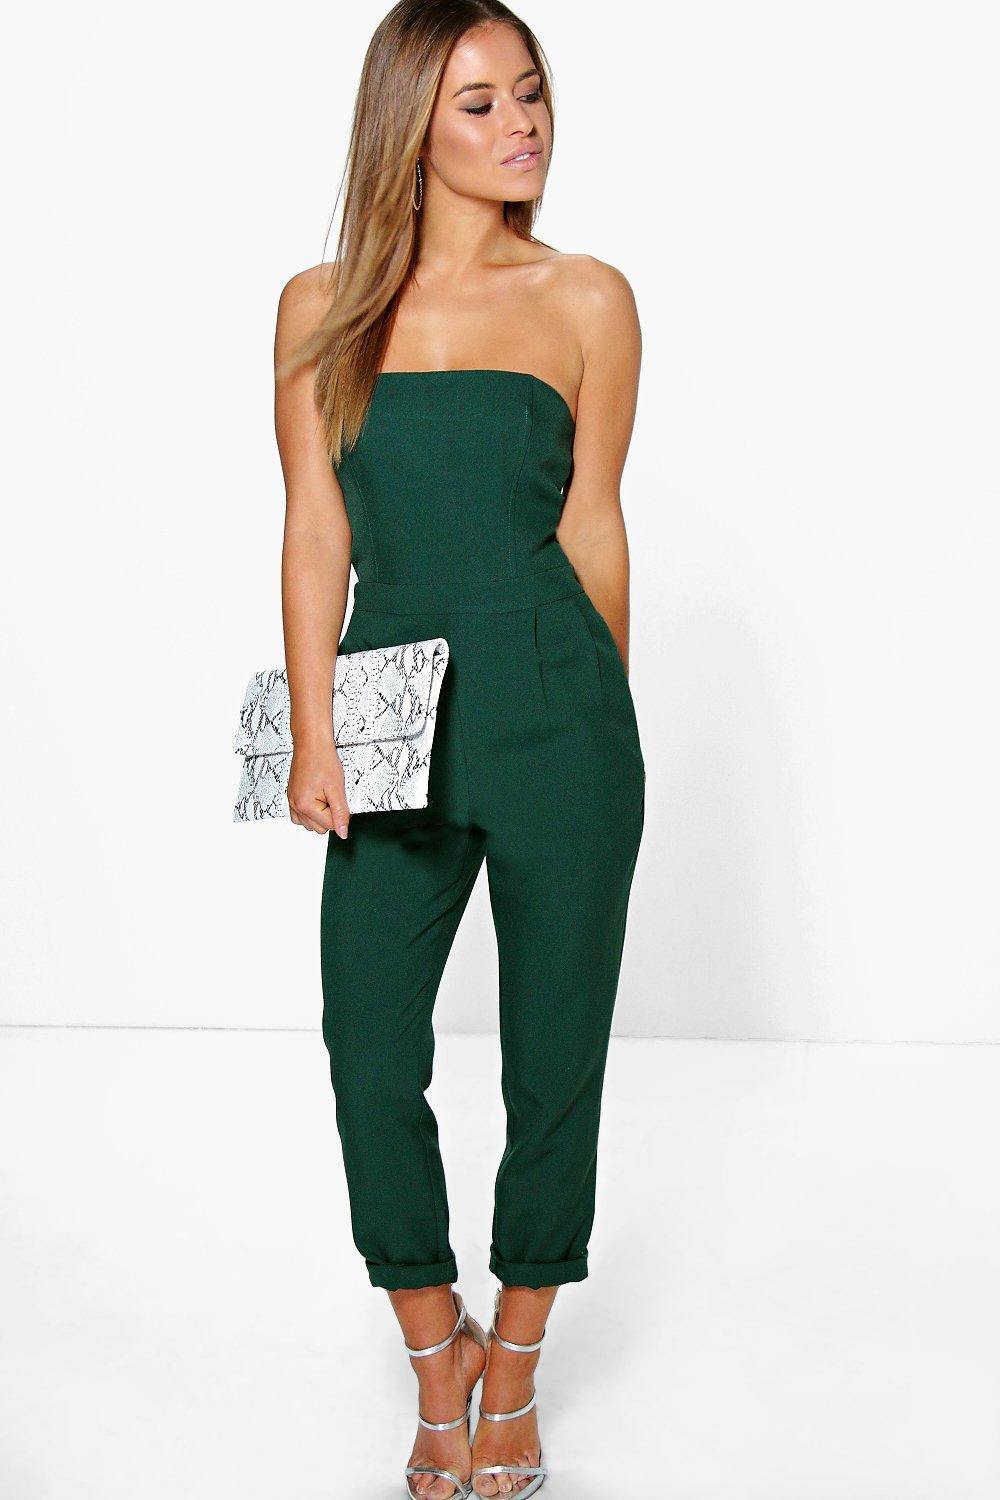 Rompers & Jumpsuits. styles. NEW. NEW. QUICK VIEW. Need A Hug Velour Jumpsuit - Hunter Green. $ USD. QUICK VIEW. Soothe Off Shoulder Jumpsuit - Black. $ USD. NEW. NEW. QUICK VIEW. A Cut Above The Rest Jumpsuit - Hot Pink. $ USD. QUICK VIEW. Buenos Aires Romper - Black.